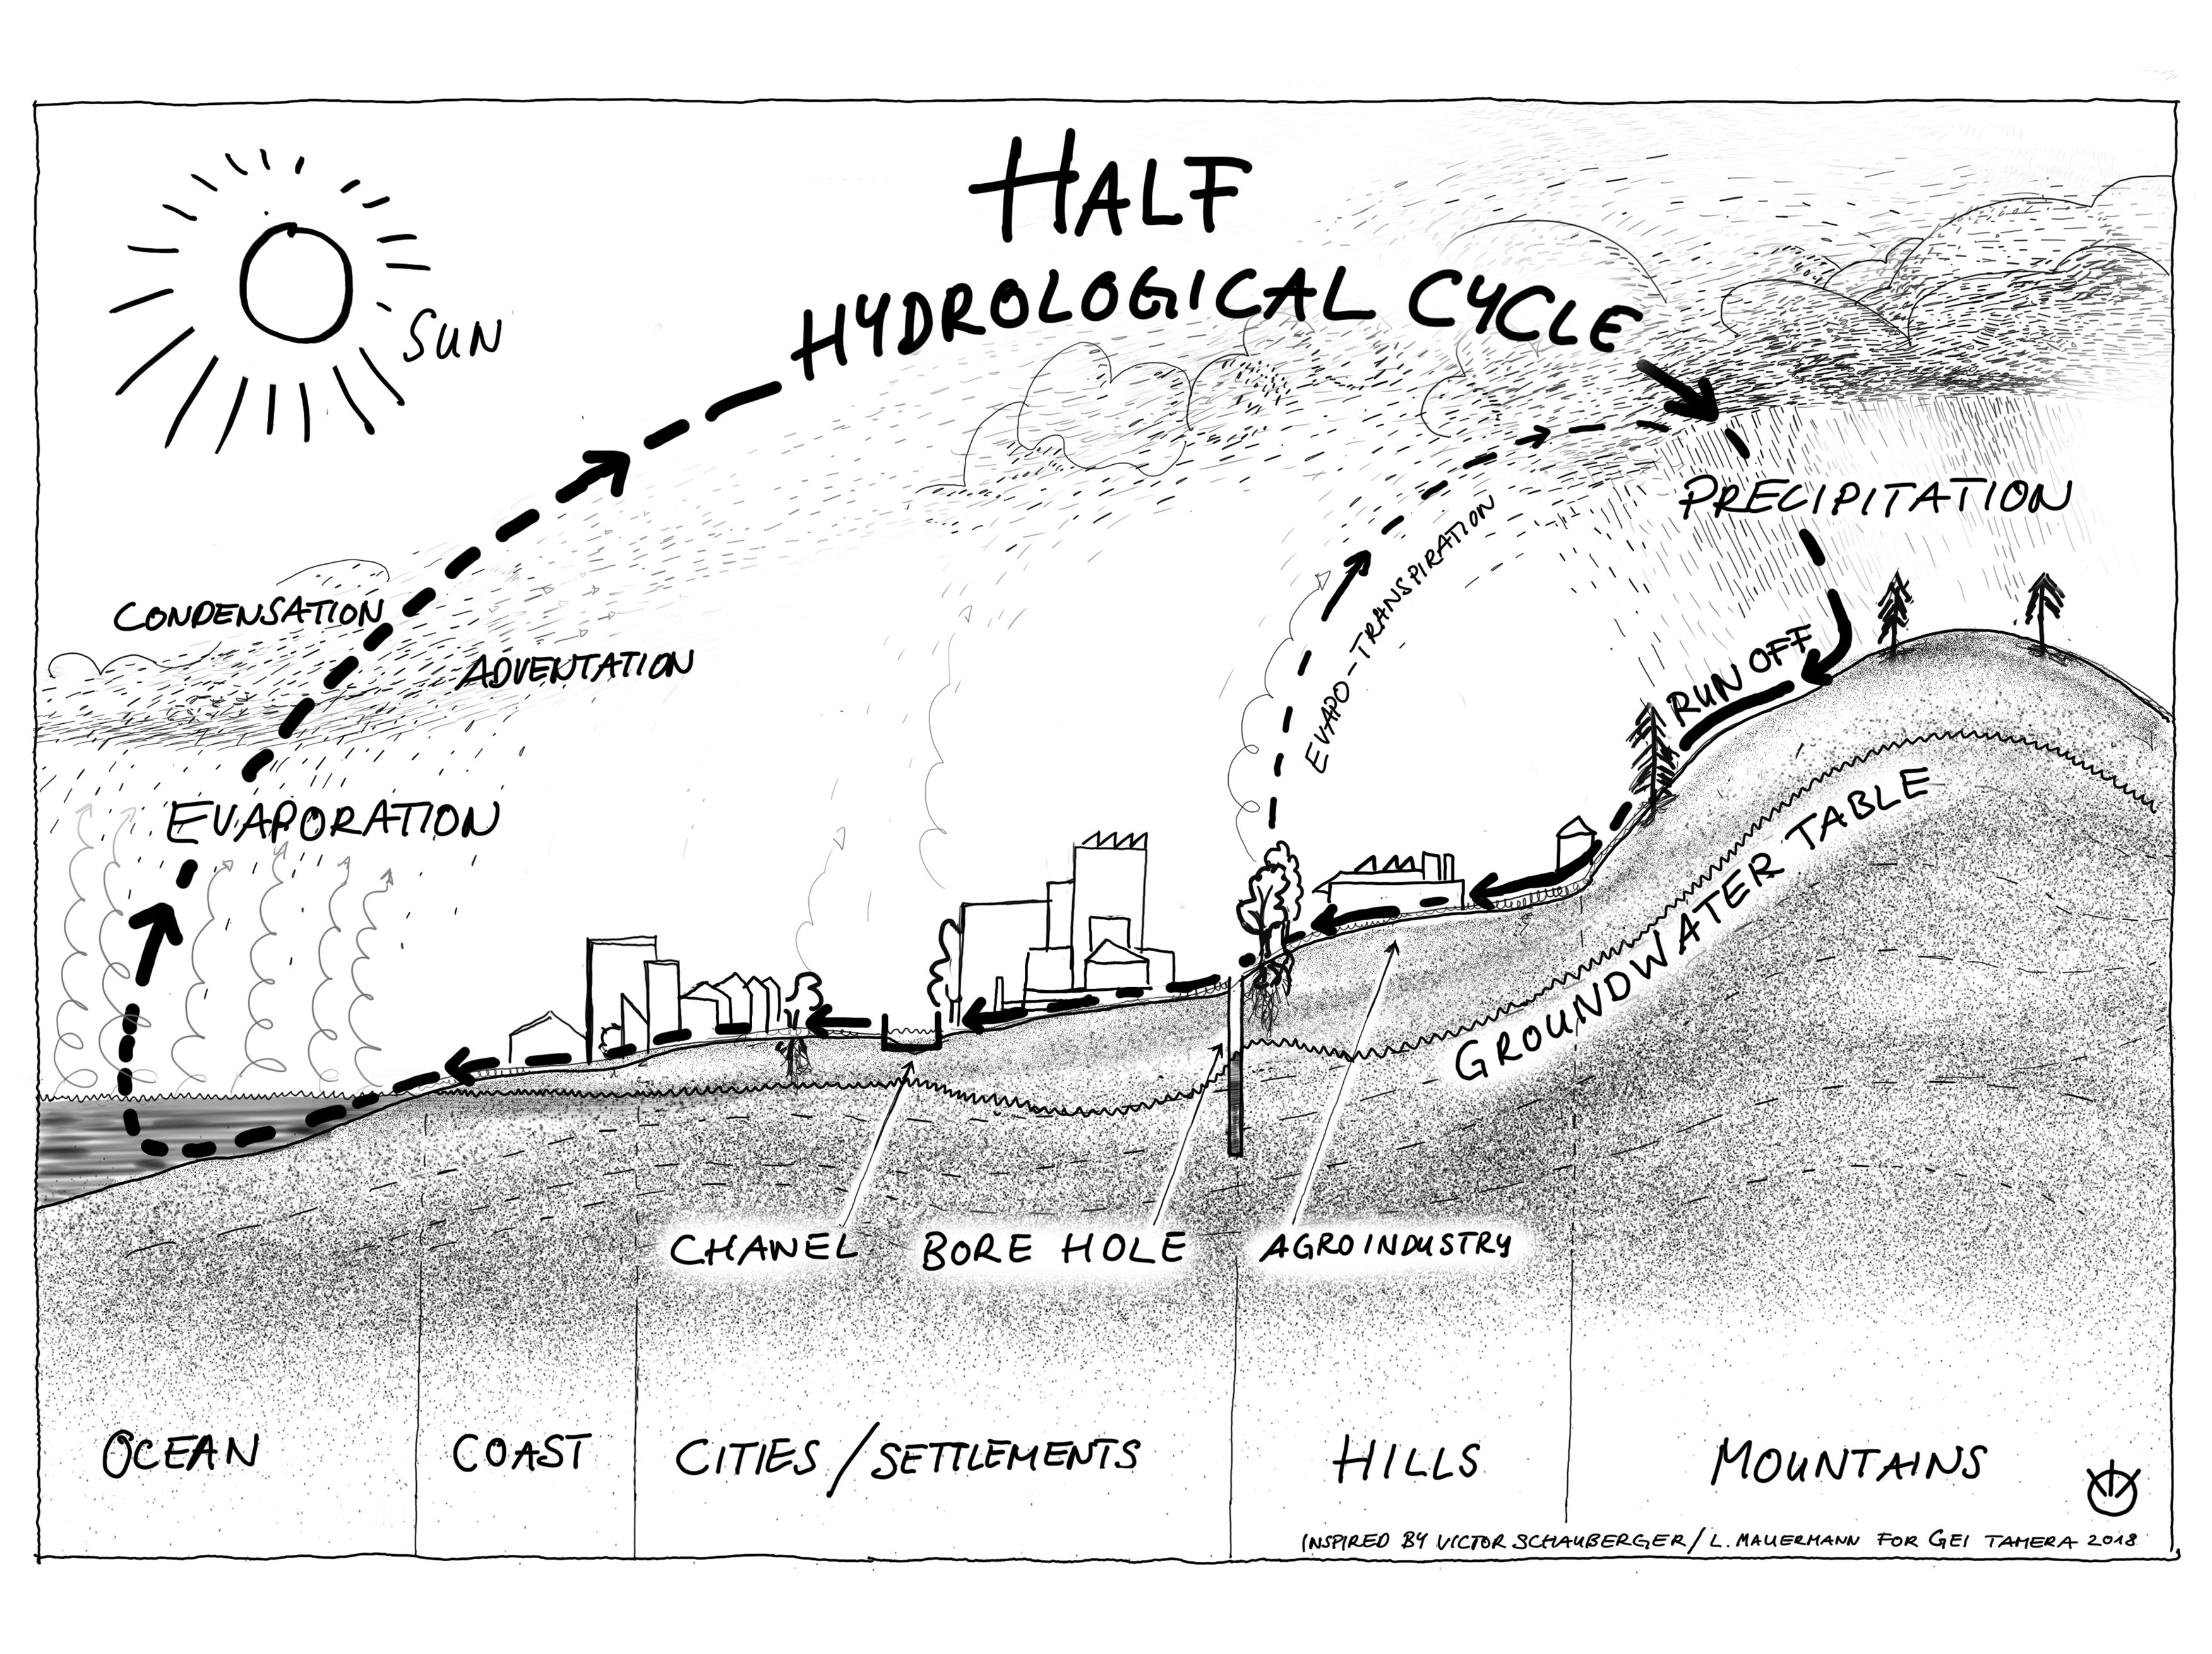 Half Hydrological Cycle